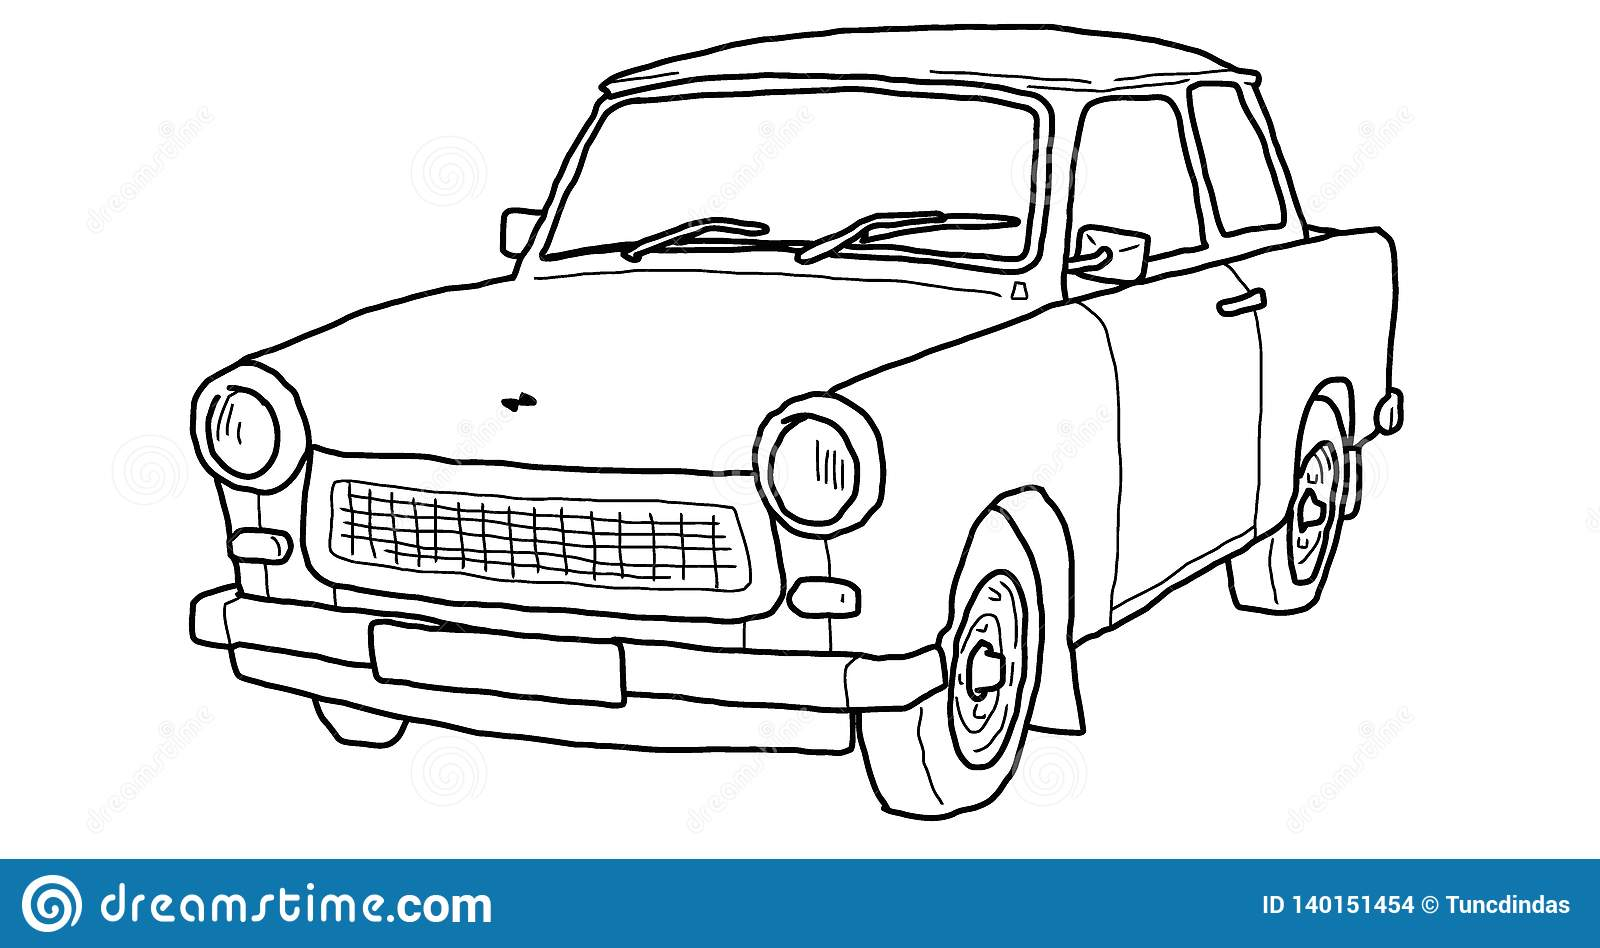 Trabant Clipart Trabant Line Art Sketch Retro Car Stock Vector Illustration Of